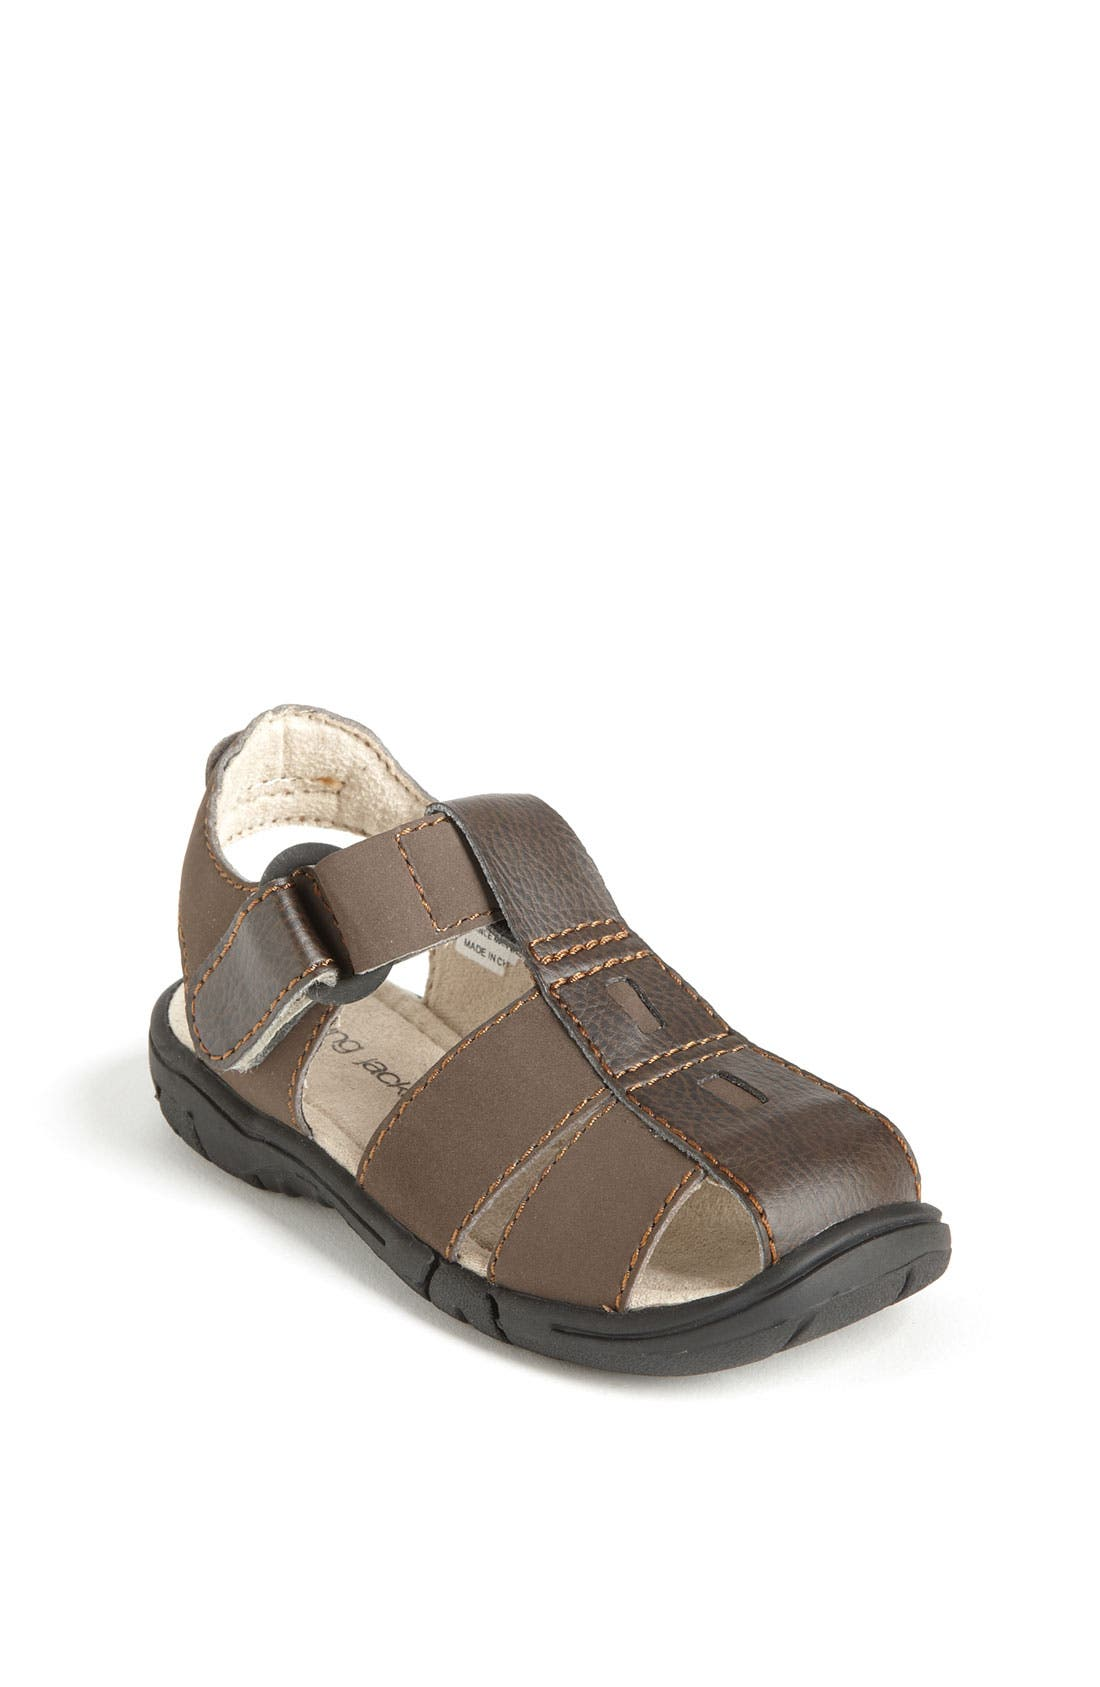 Alternate Image 1 Selected - Jumping Jacks 'Sand Lot' Sandal (Walker & Toddler)